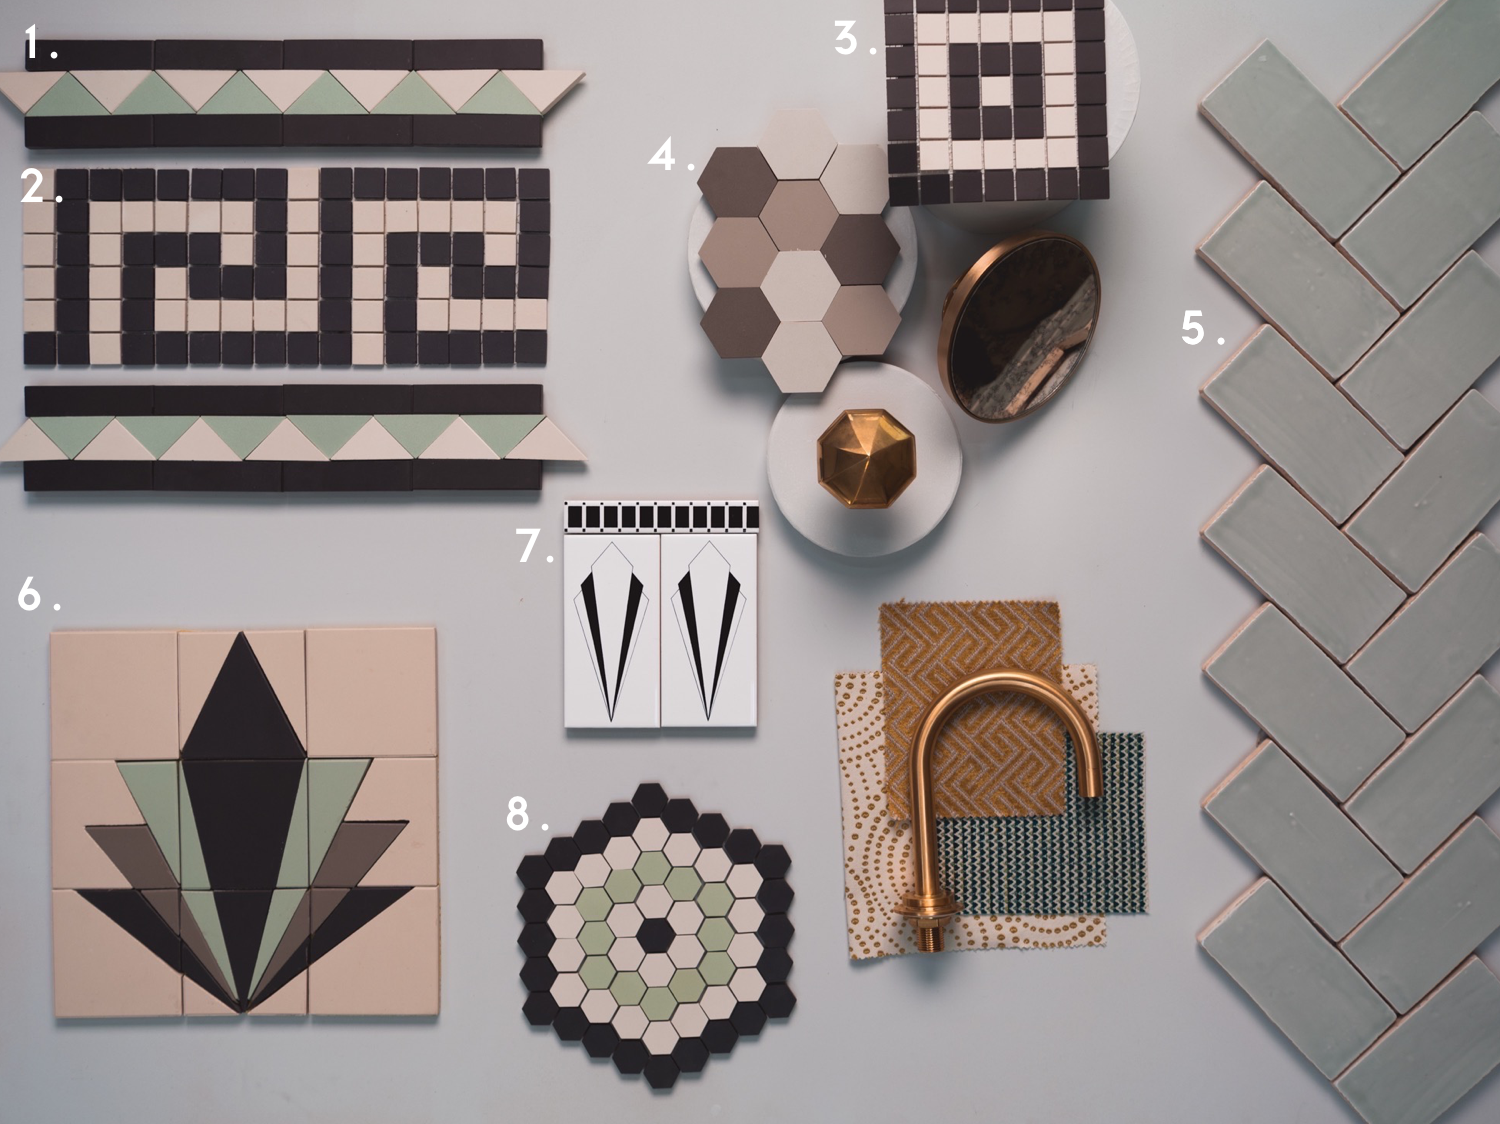 Art deco tiles header image